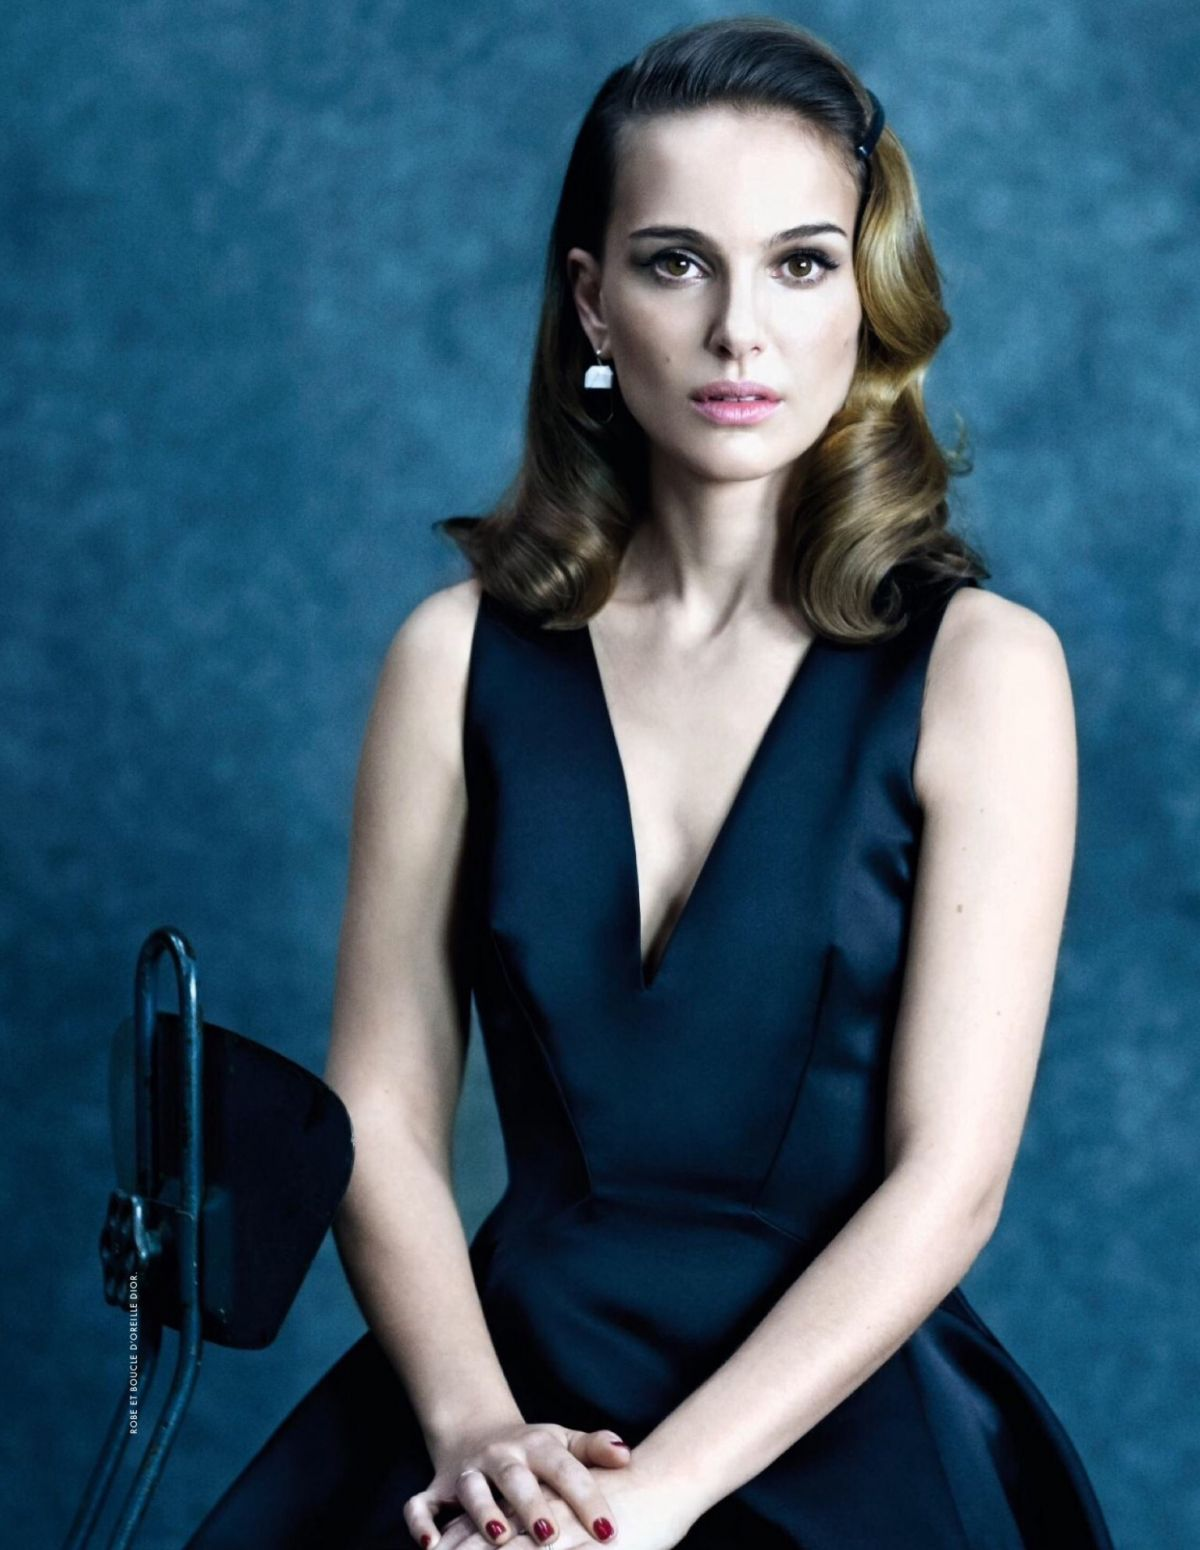 NATALIE PORTMAN in Elle Magazine, February/March 2015 Issue ... Natalie Portman